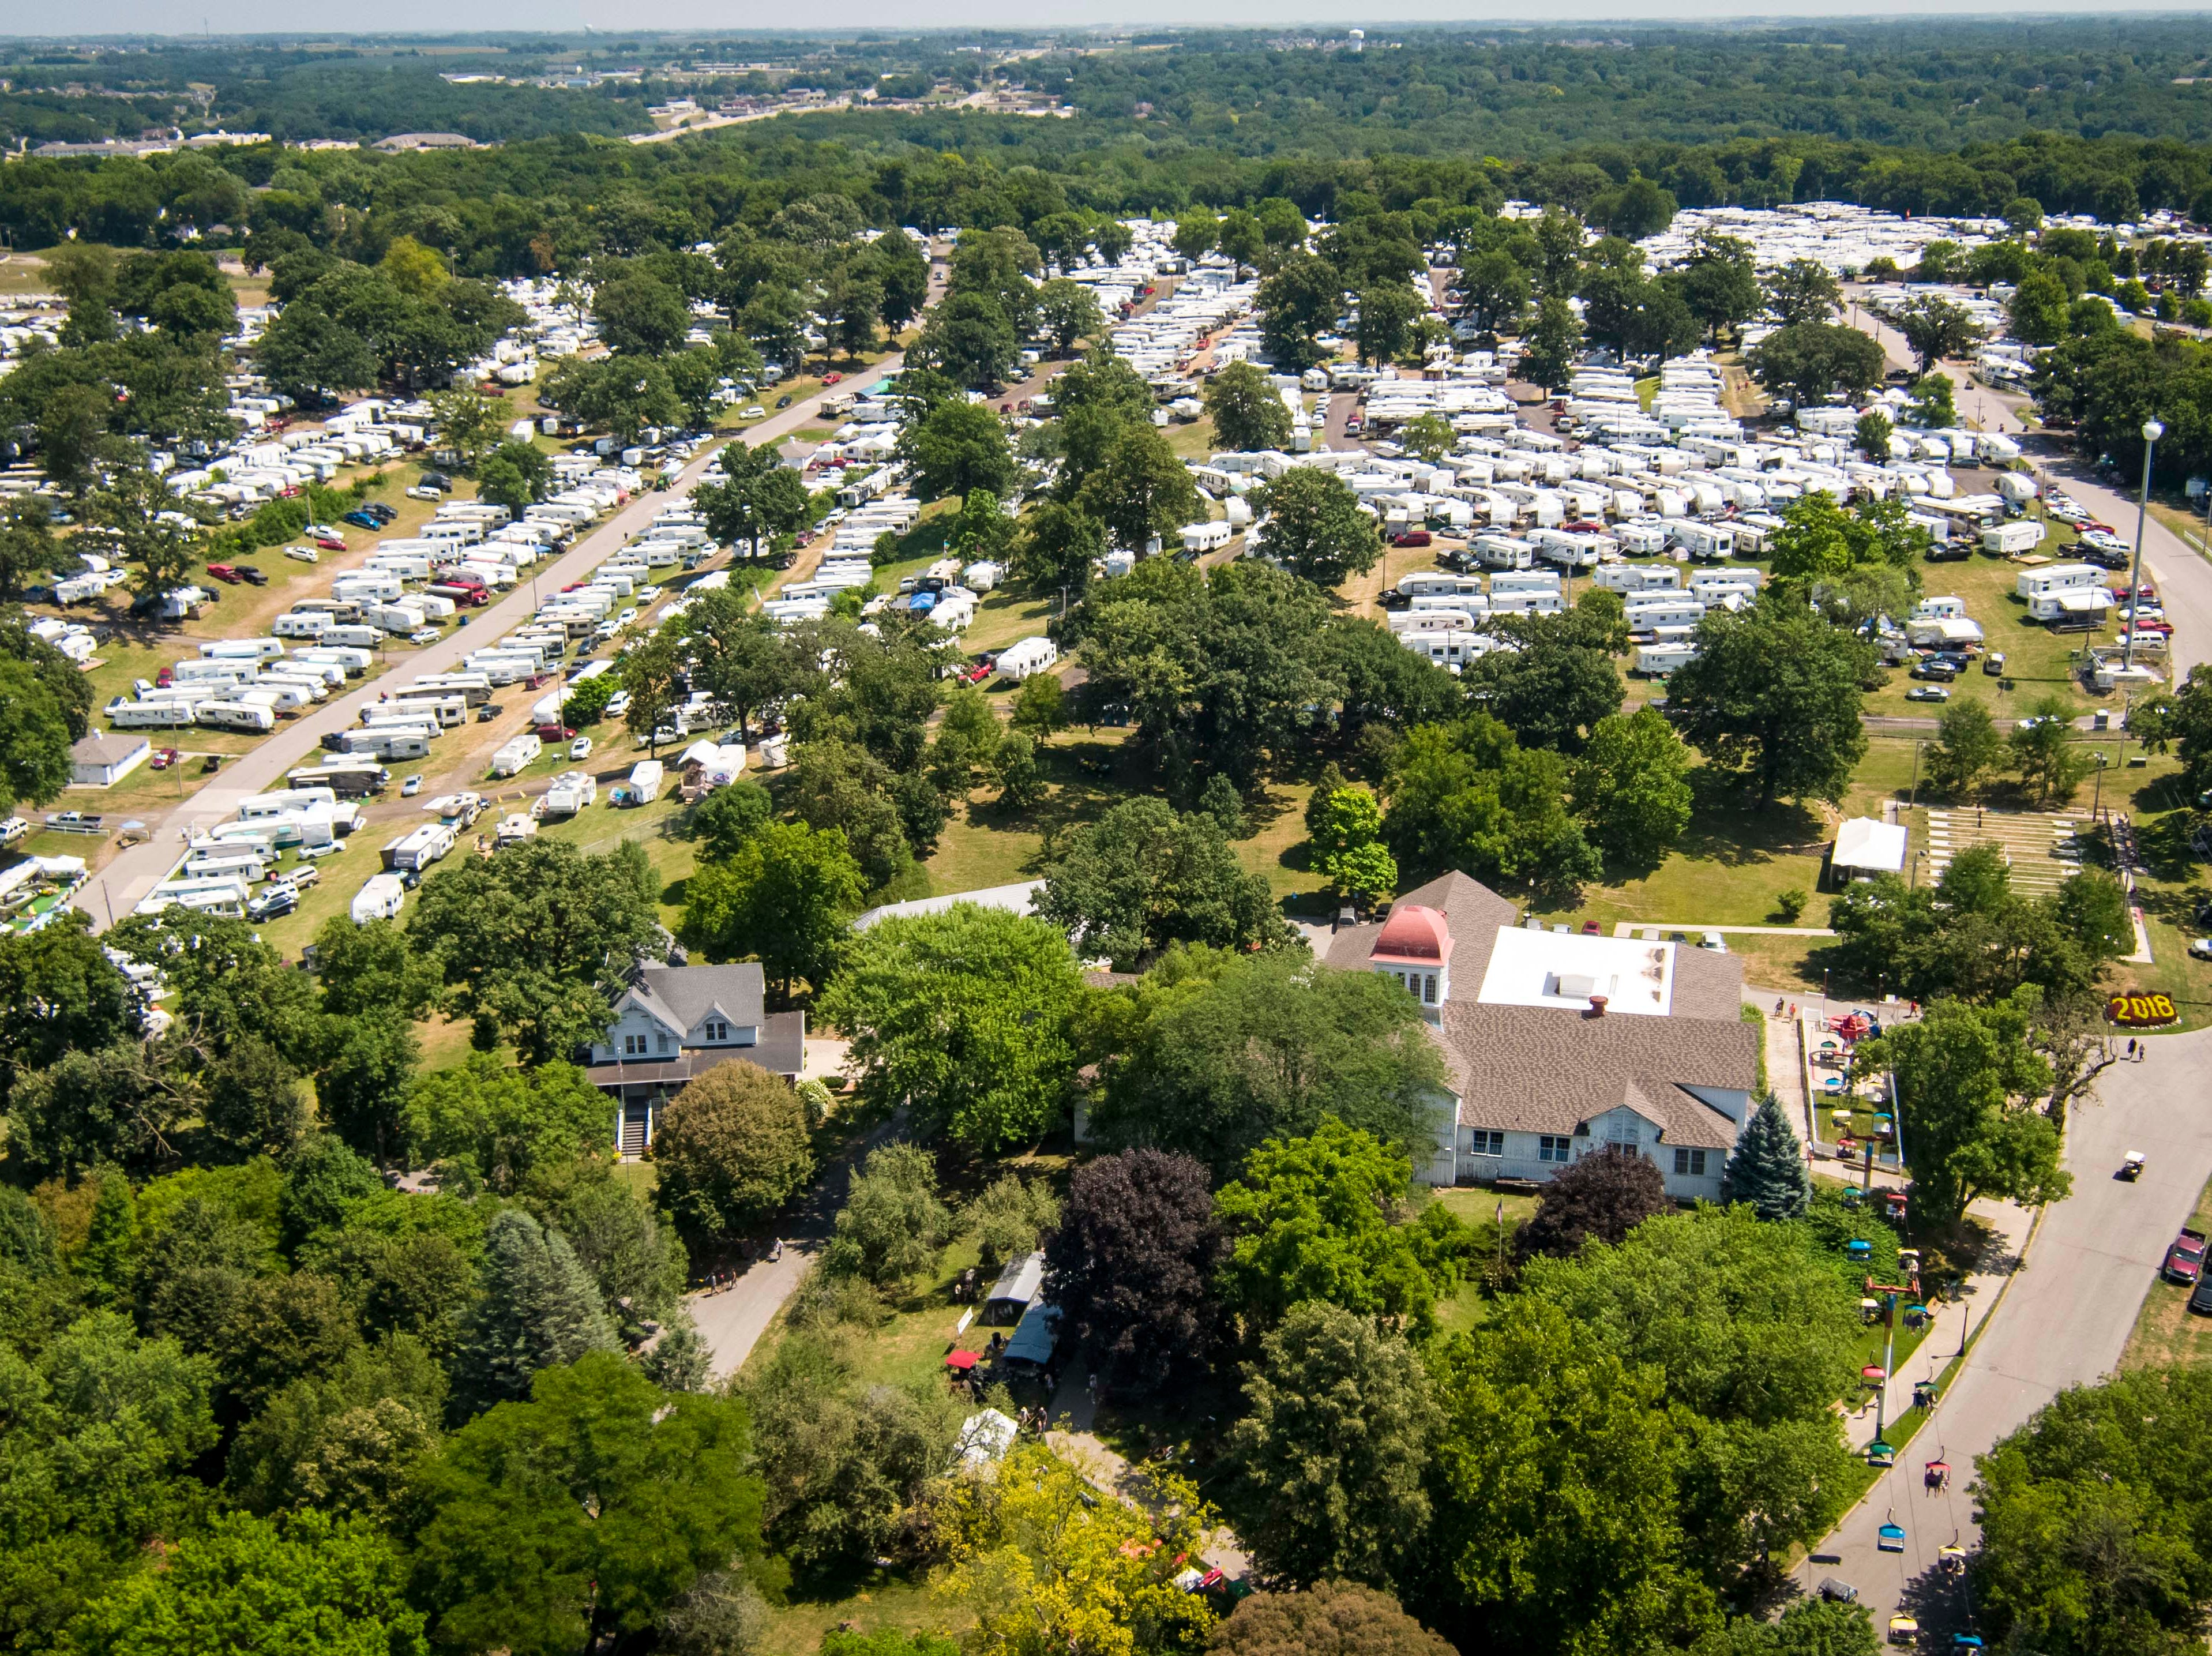 Aerial view of the fair campgrounds at the 2018 Iowa State Fair in Des Moines Thursday, Aug. 9, 2018.